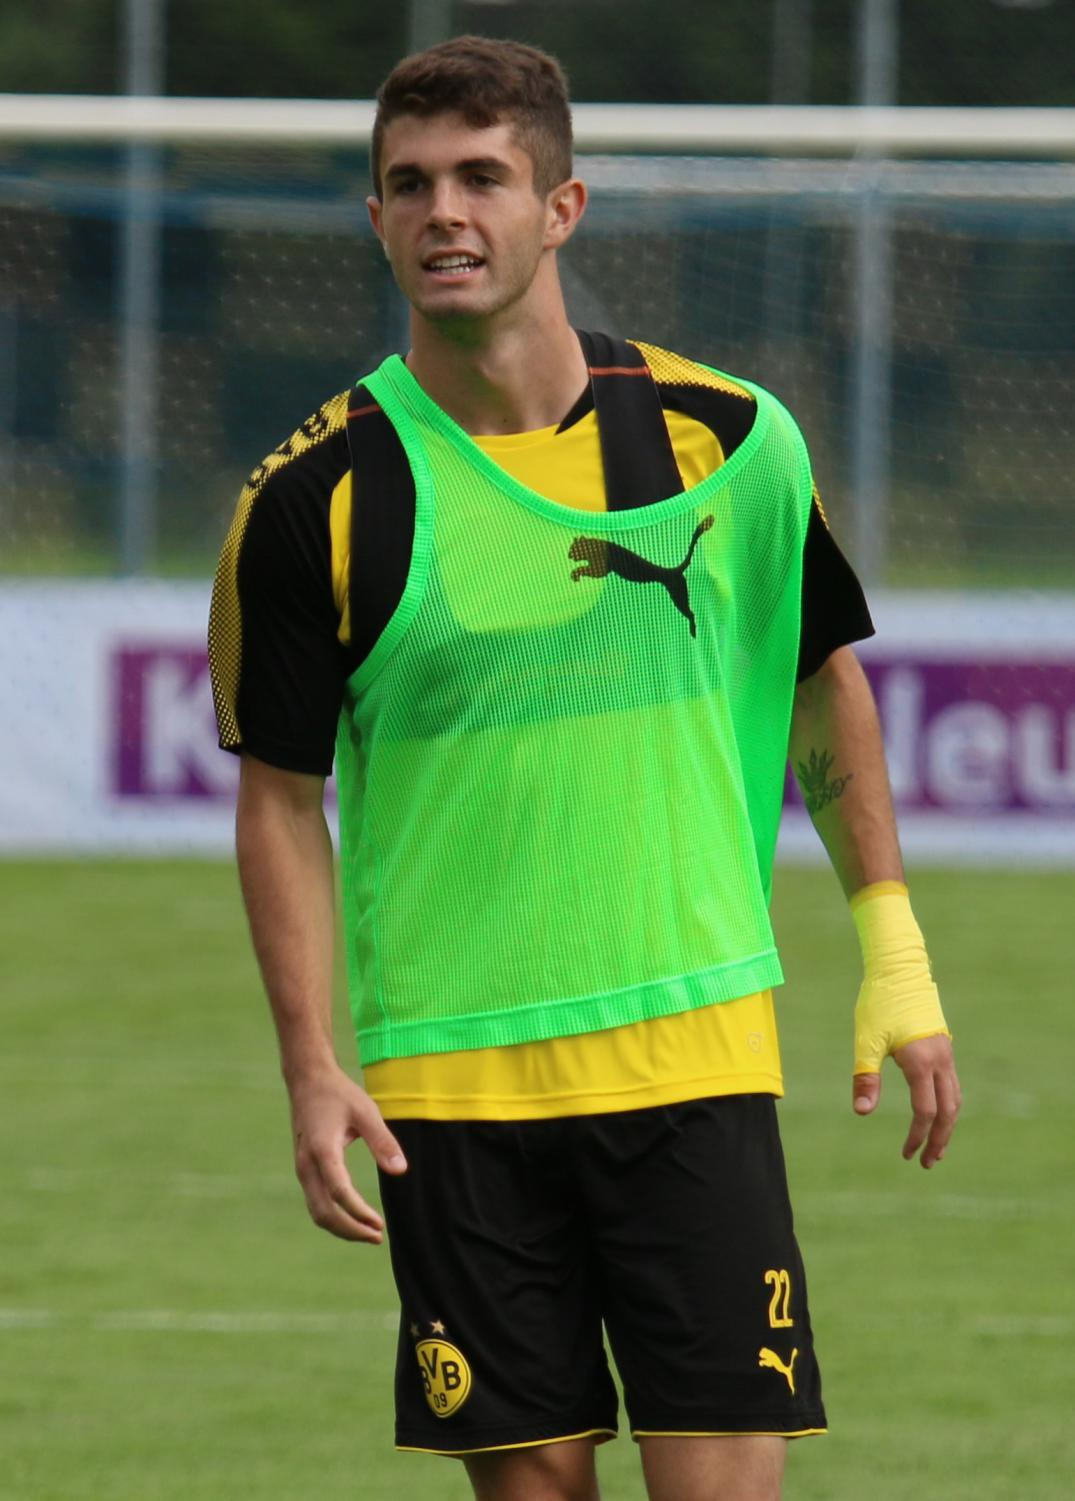 Former Borussia Dortmund winger Christian Pulisic trains with Dortmund first team during a team practice. Starting next season, Pulisic will train in Blue and White at Chelsea F.C.